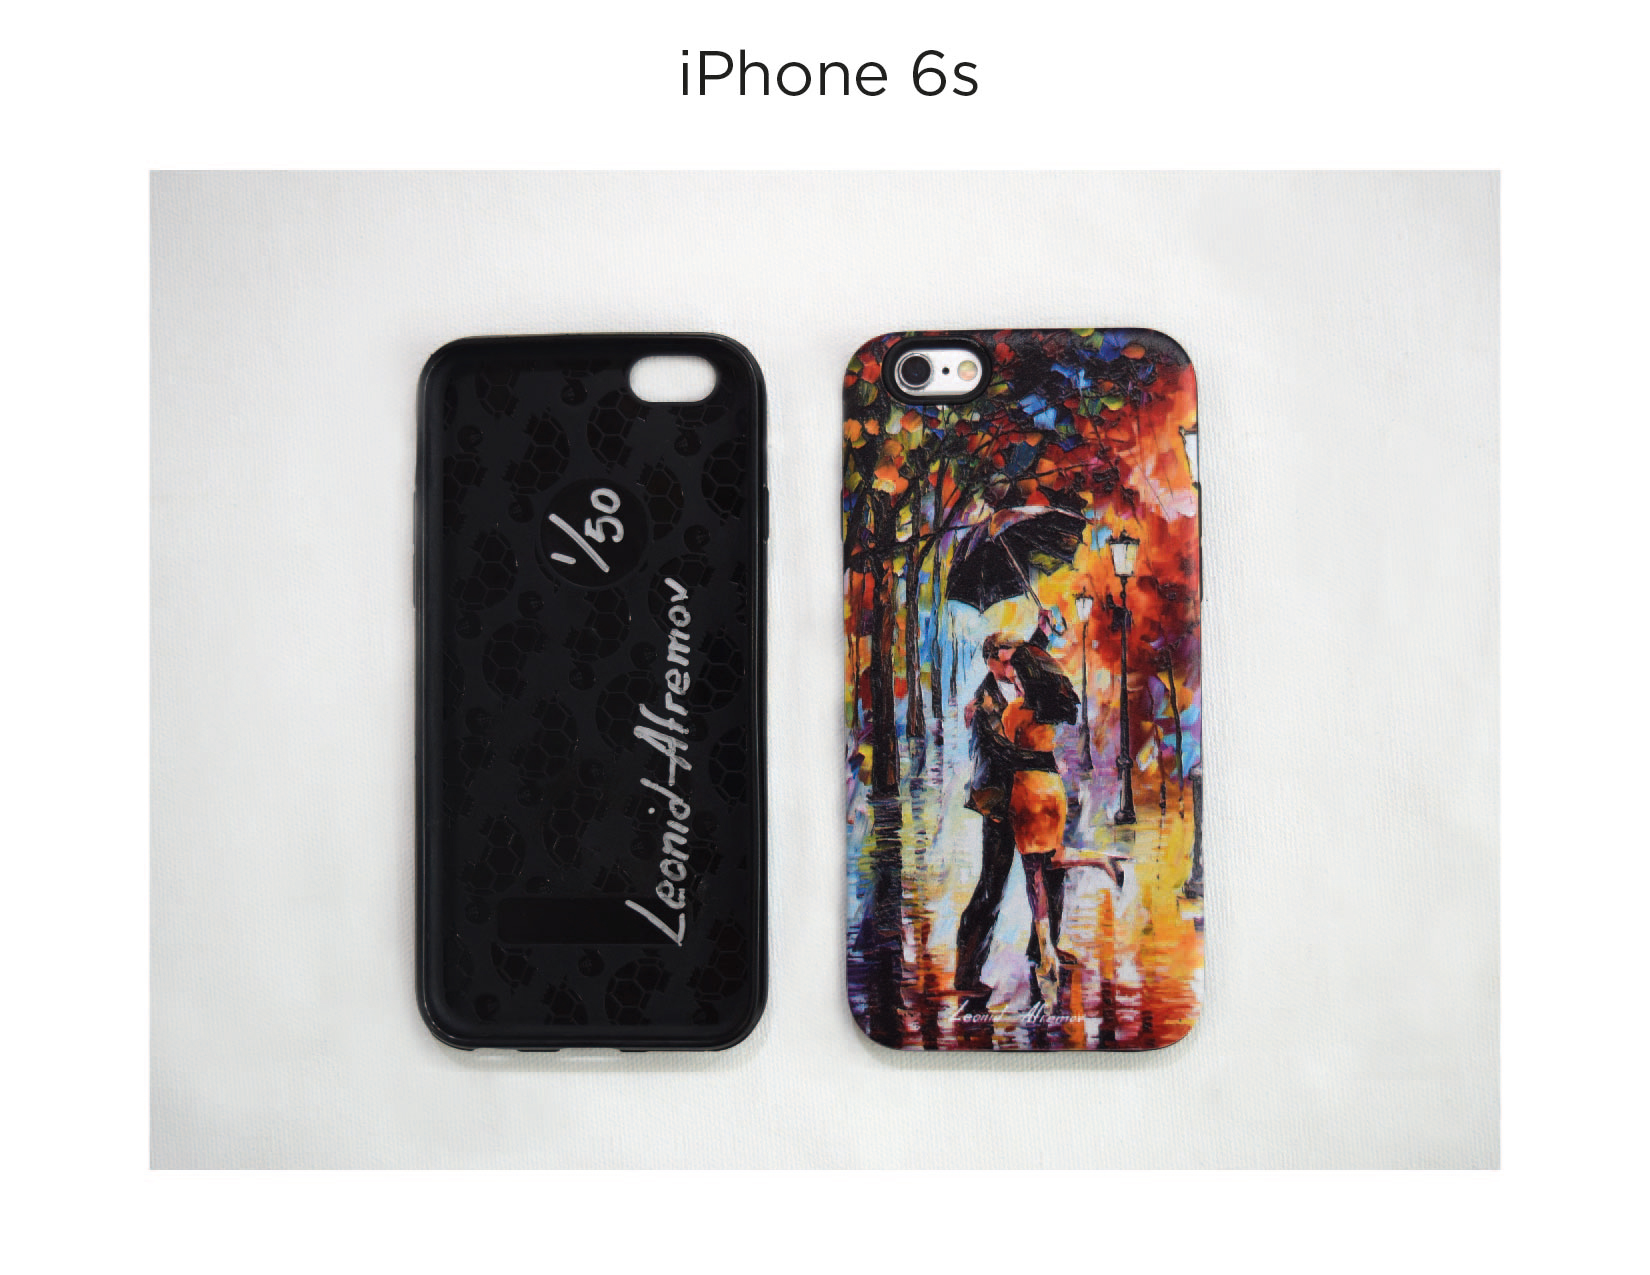 Dance Under The Rain - iPhone 6 s plastic protective case